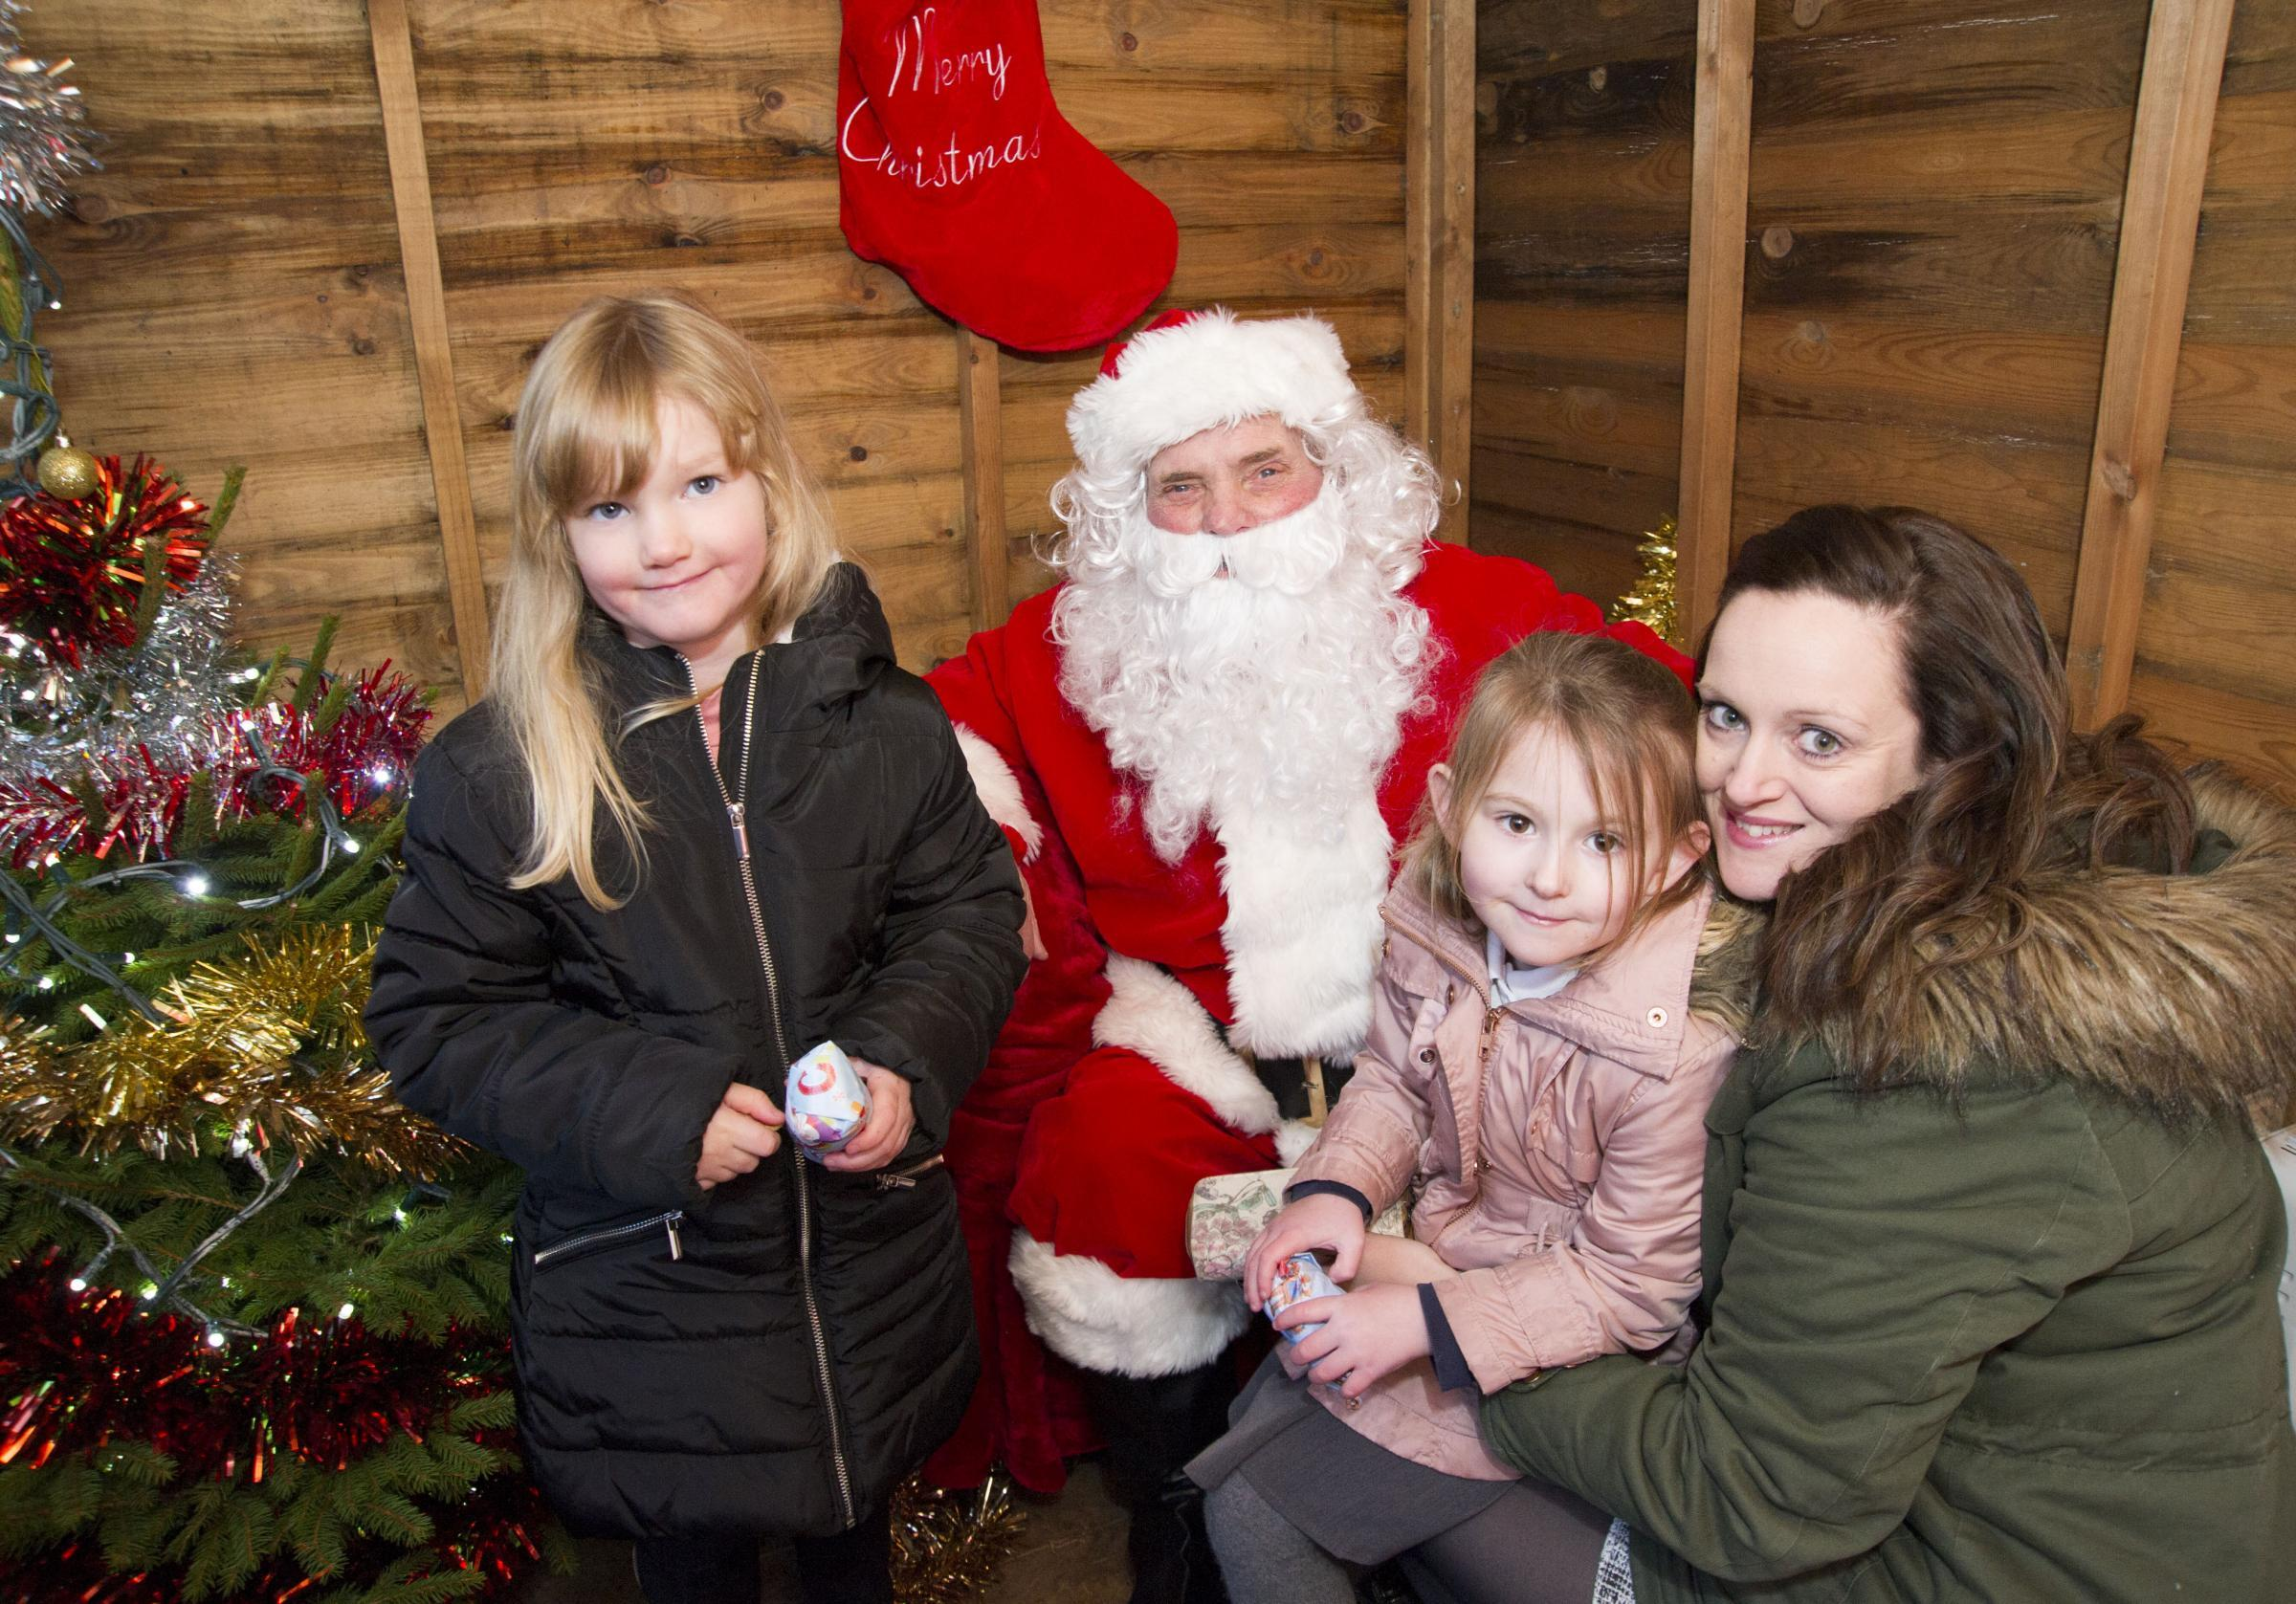 Youngsters meet Santa at last year's Stratton Christmas Extravaganza.